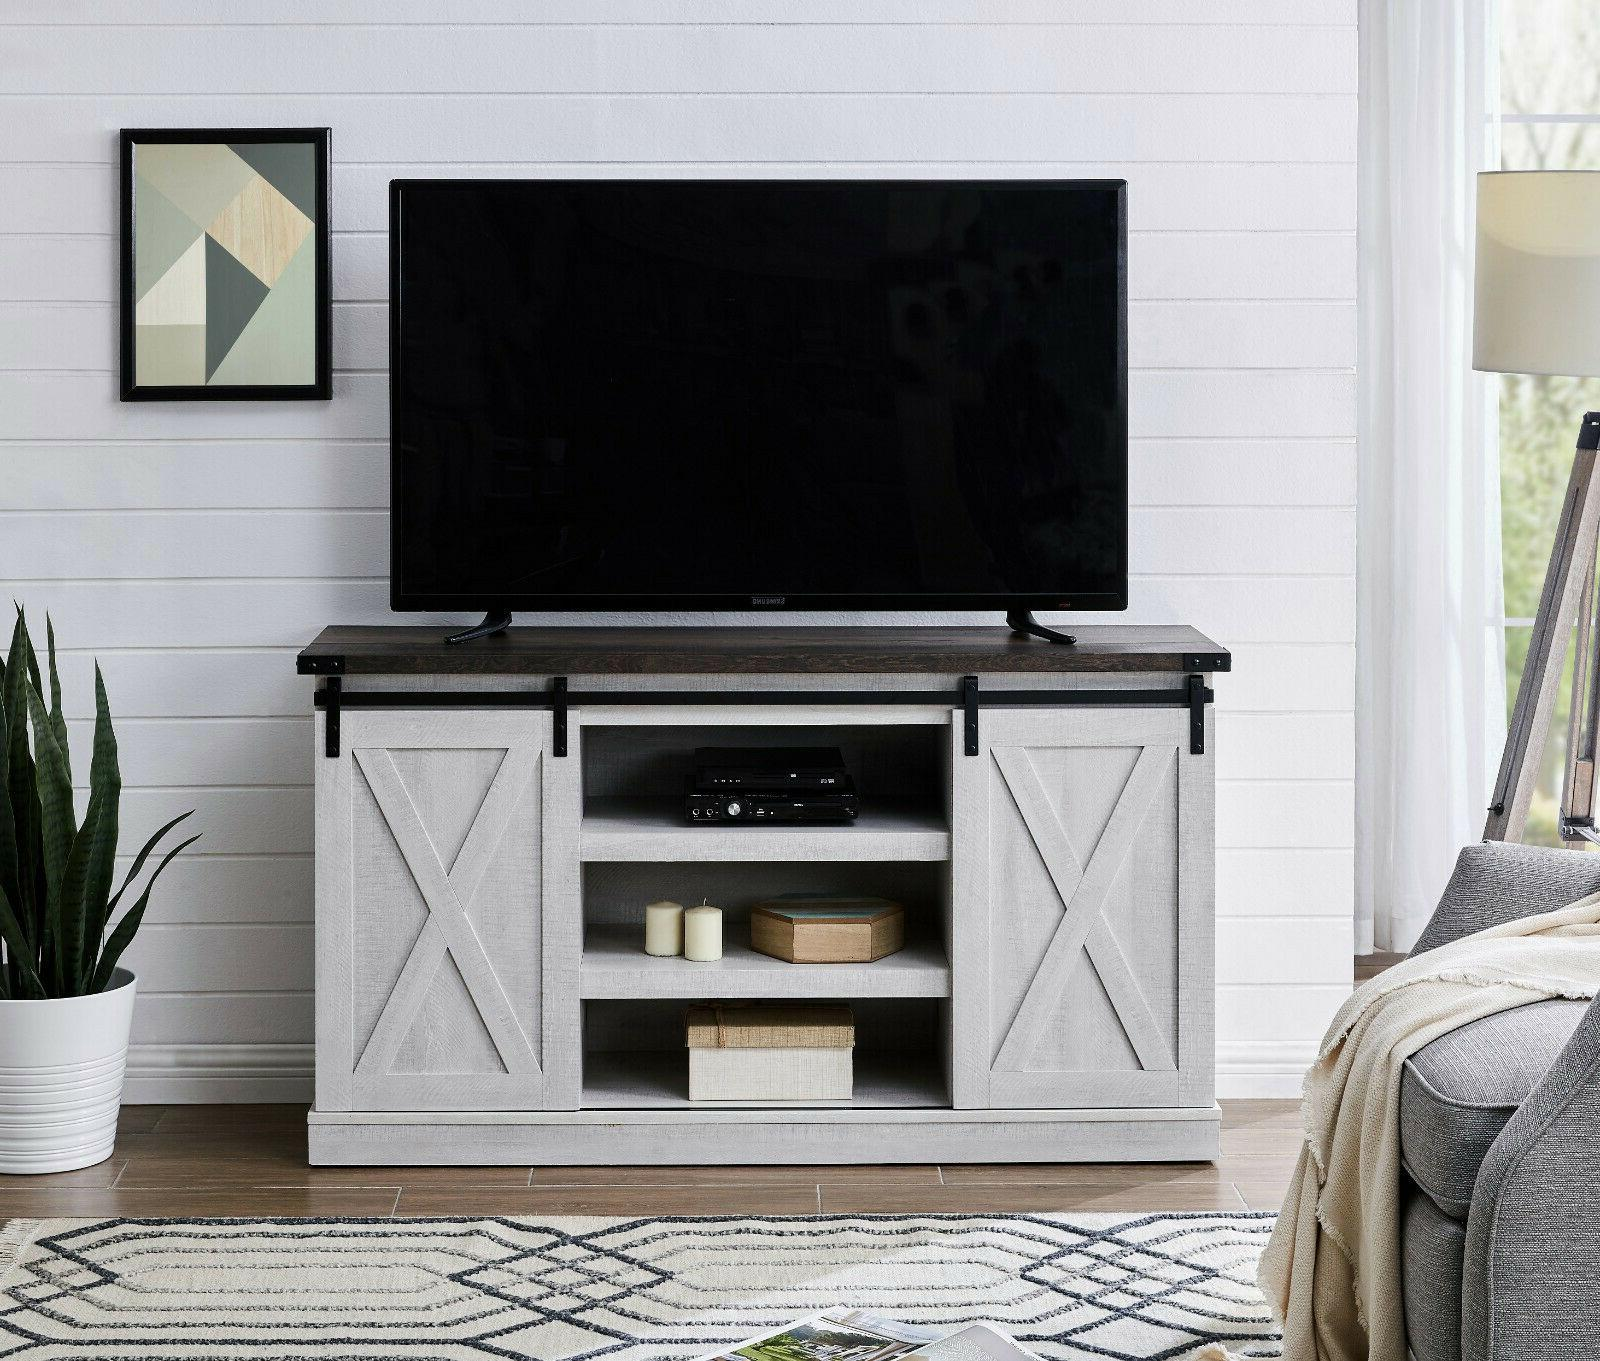 Rustic Farmhouse Sliding Barn Door TV Stand Console Table St